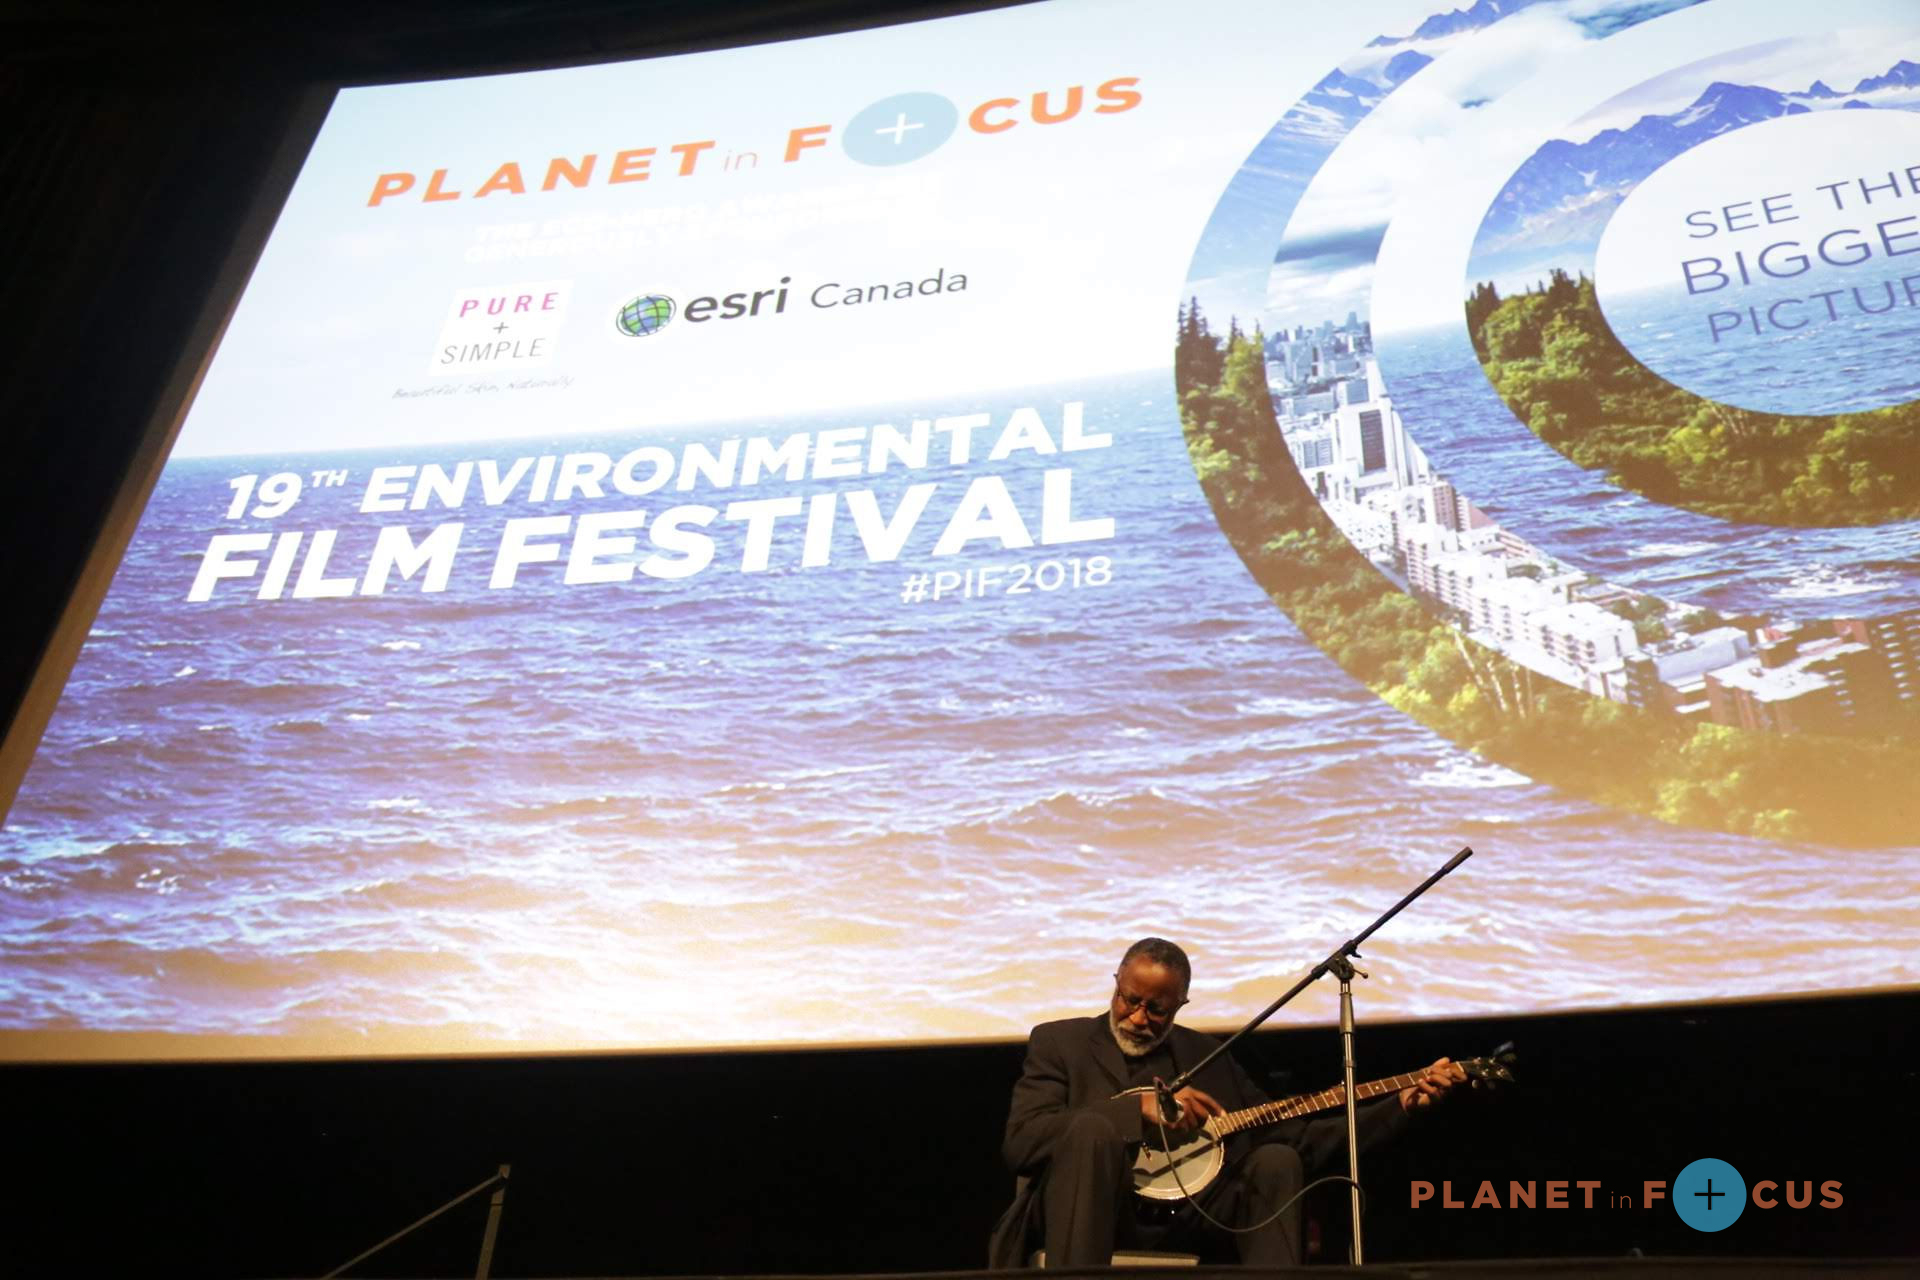 Ending the festival on an inspirational note, we honoured our 2018 International Eco-Hero Dr. John Francis, The Planet Walker. During the awards ceremony we also celebrated our Youth Eco-Hero Rachel Parent, and Dr. Francis graced the audience with a banjo performance. After the awards ceremony we screened Andrew Nisker's personal piece Ground War, followed by a post screening discussion with Dewayne Lee Johnson.